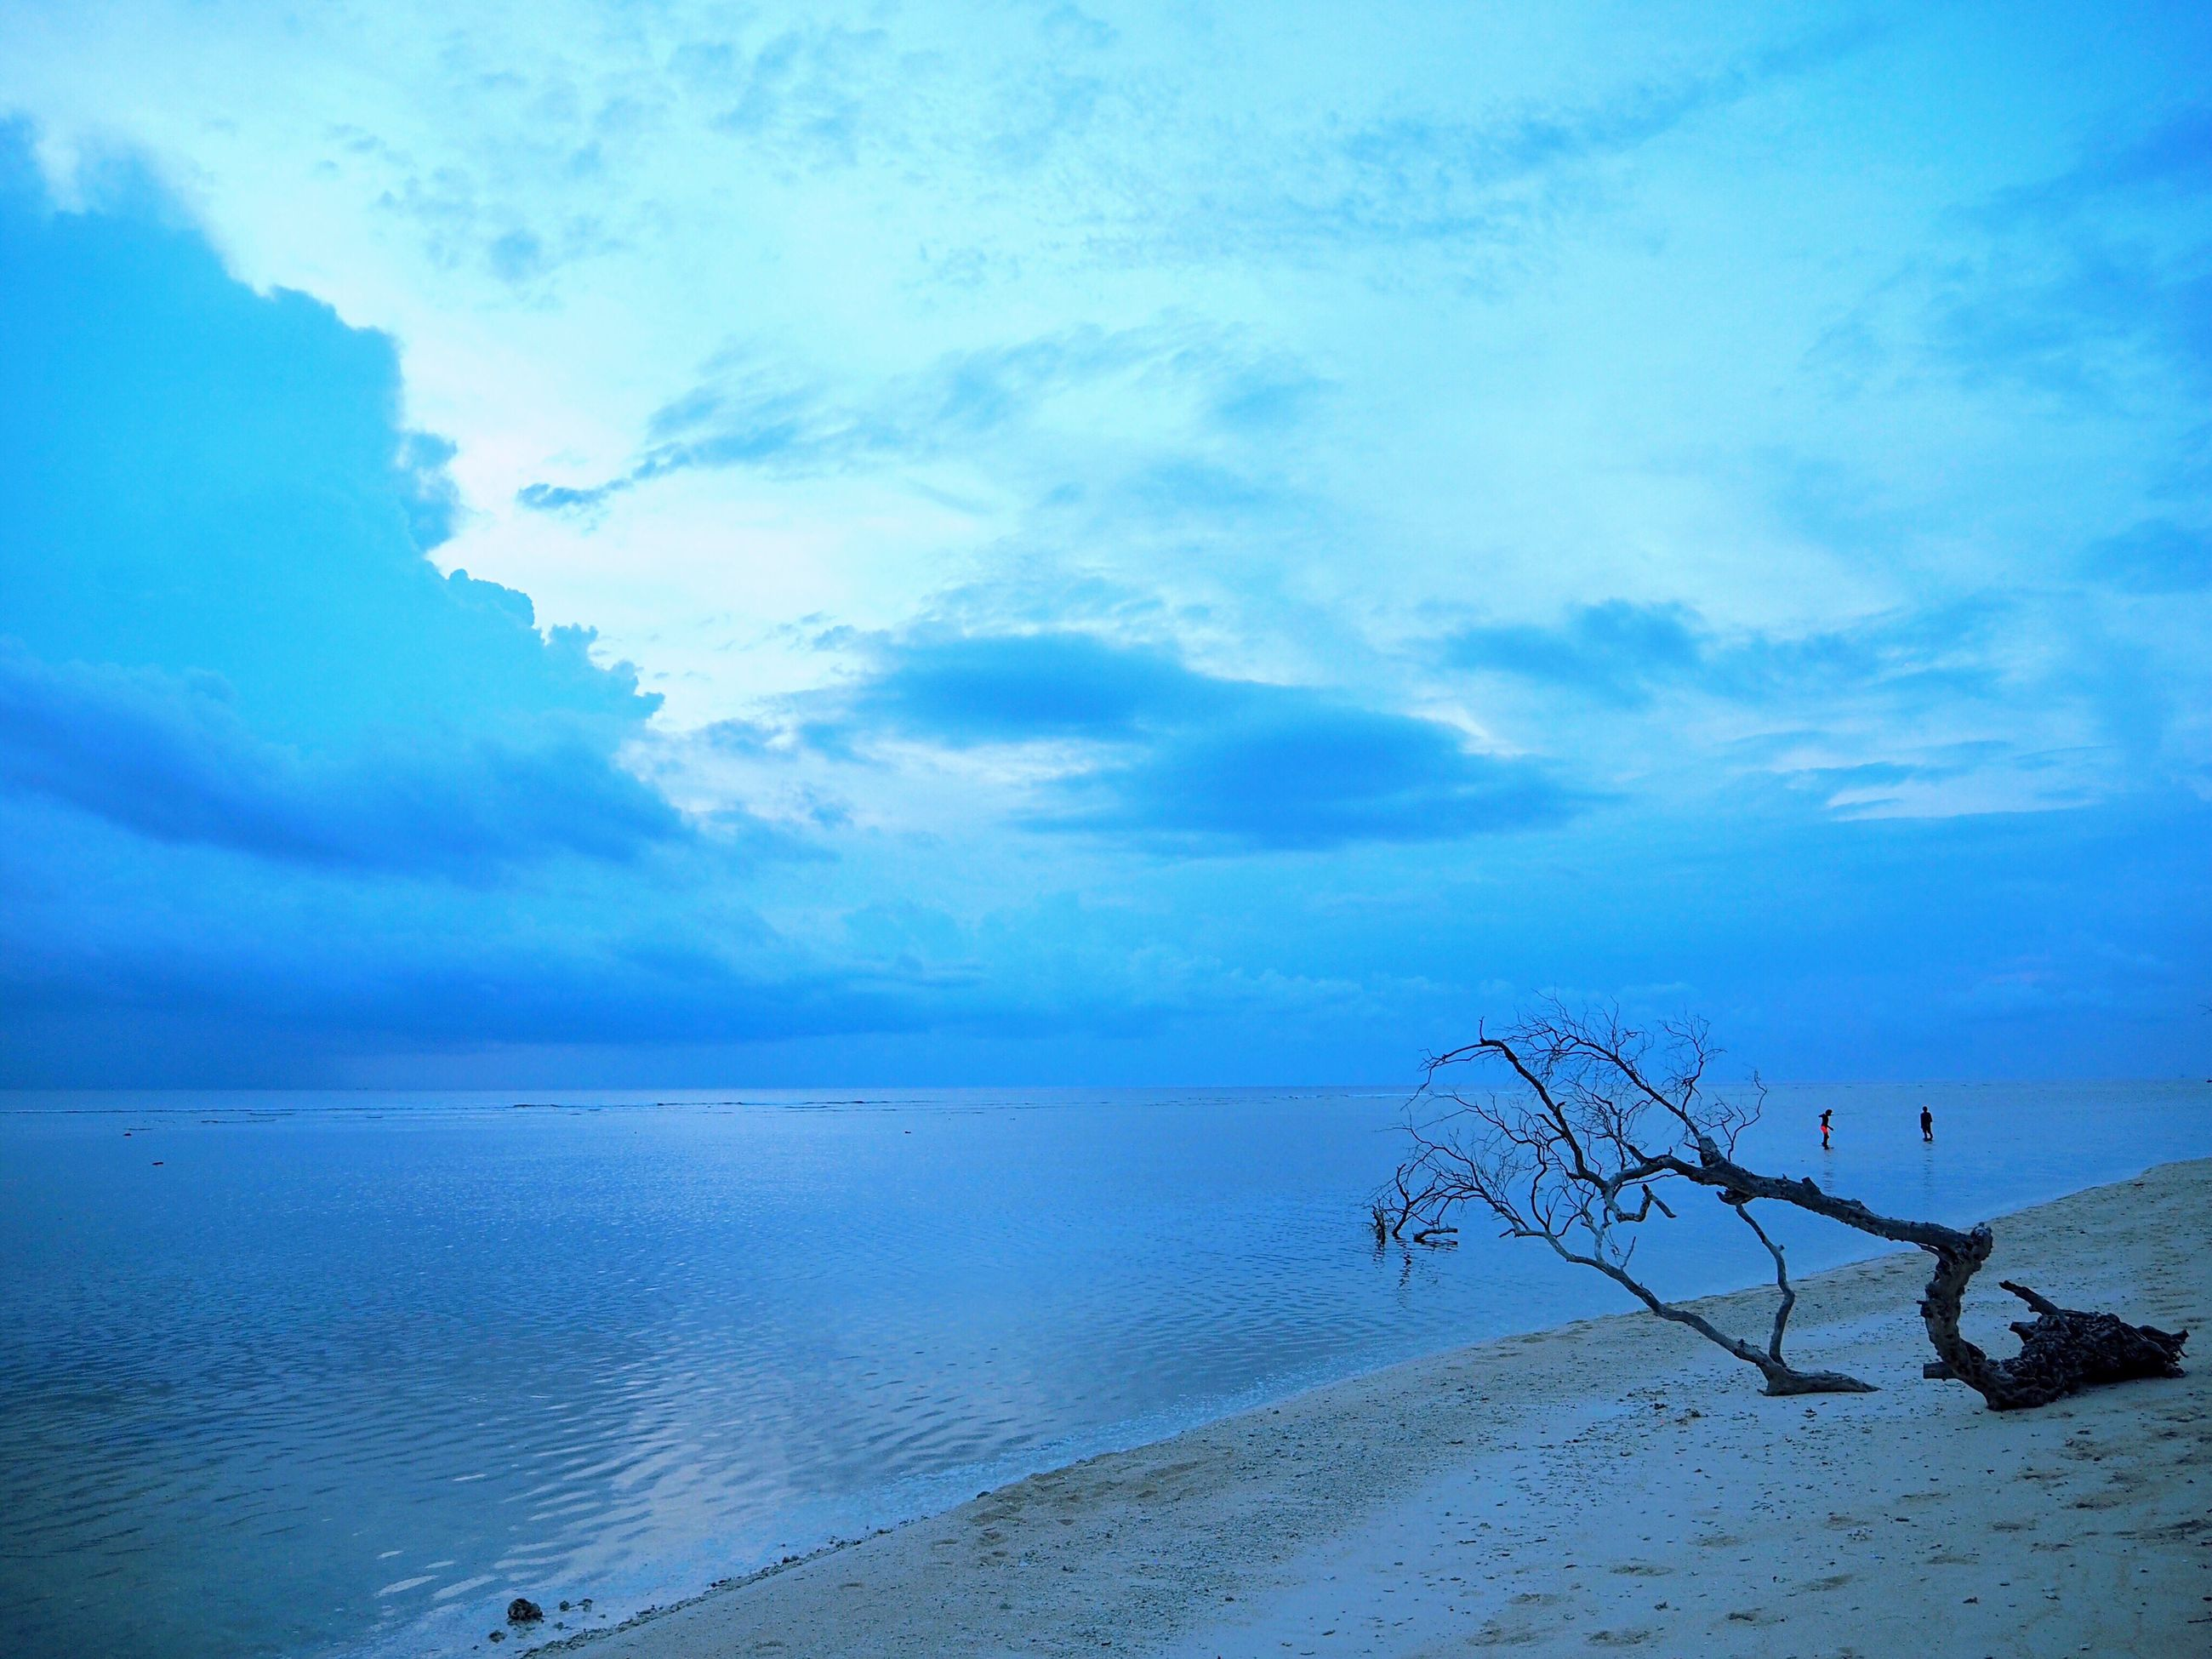 sea, sky, nature, horizon over water, water, beauty in nature, beach, blue, cloud - sky, tranquility, scenics, no people, tranquil scene, outdoors, tree, bird, day